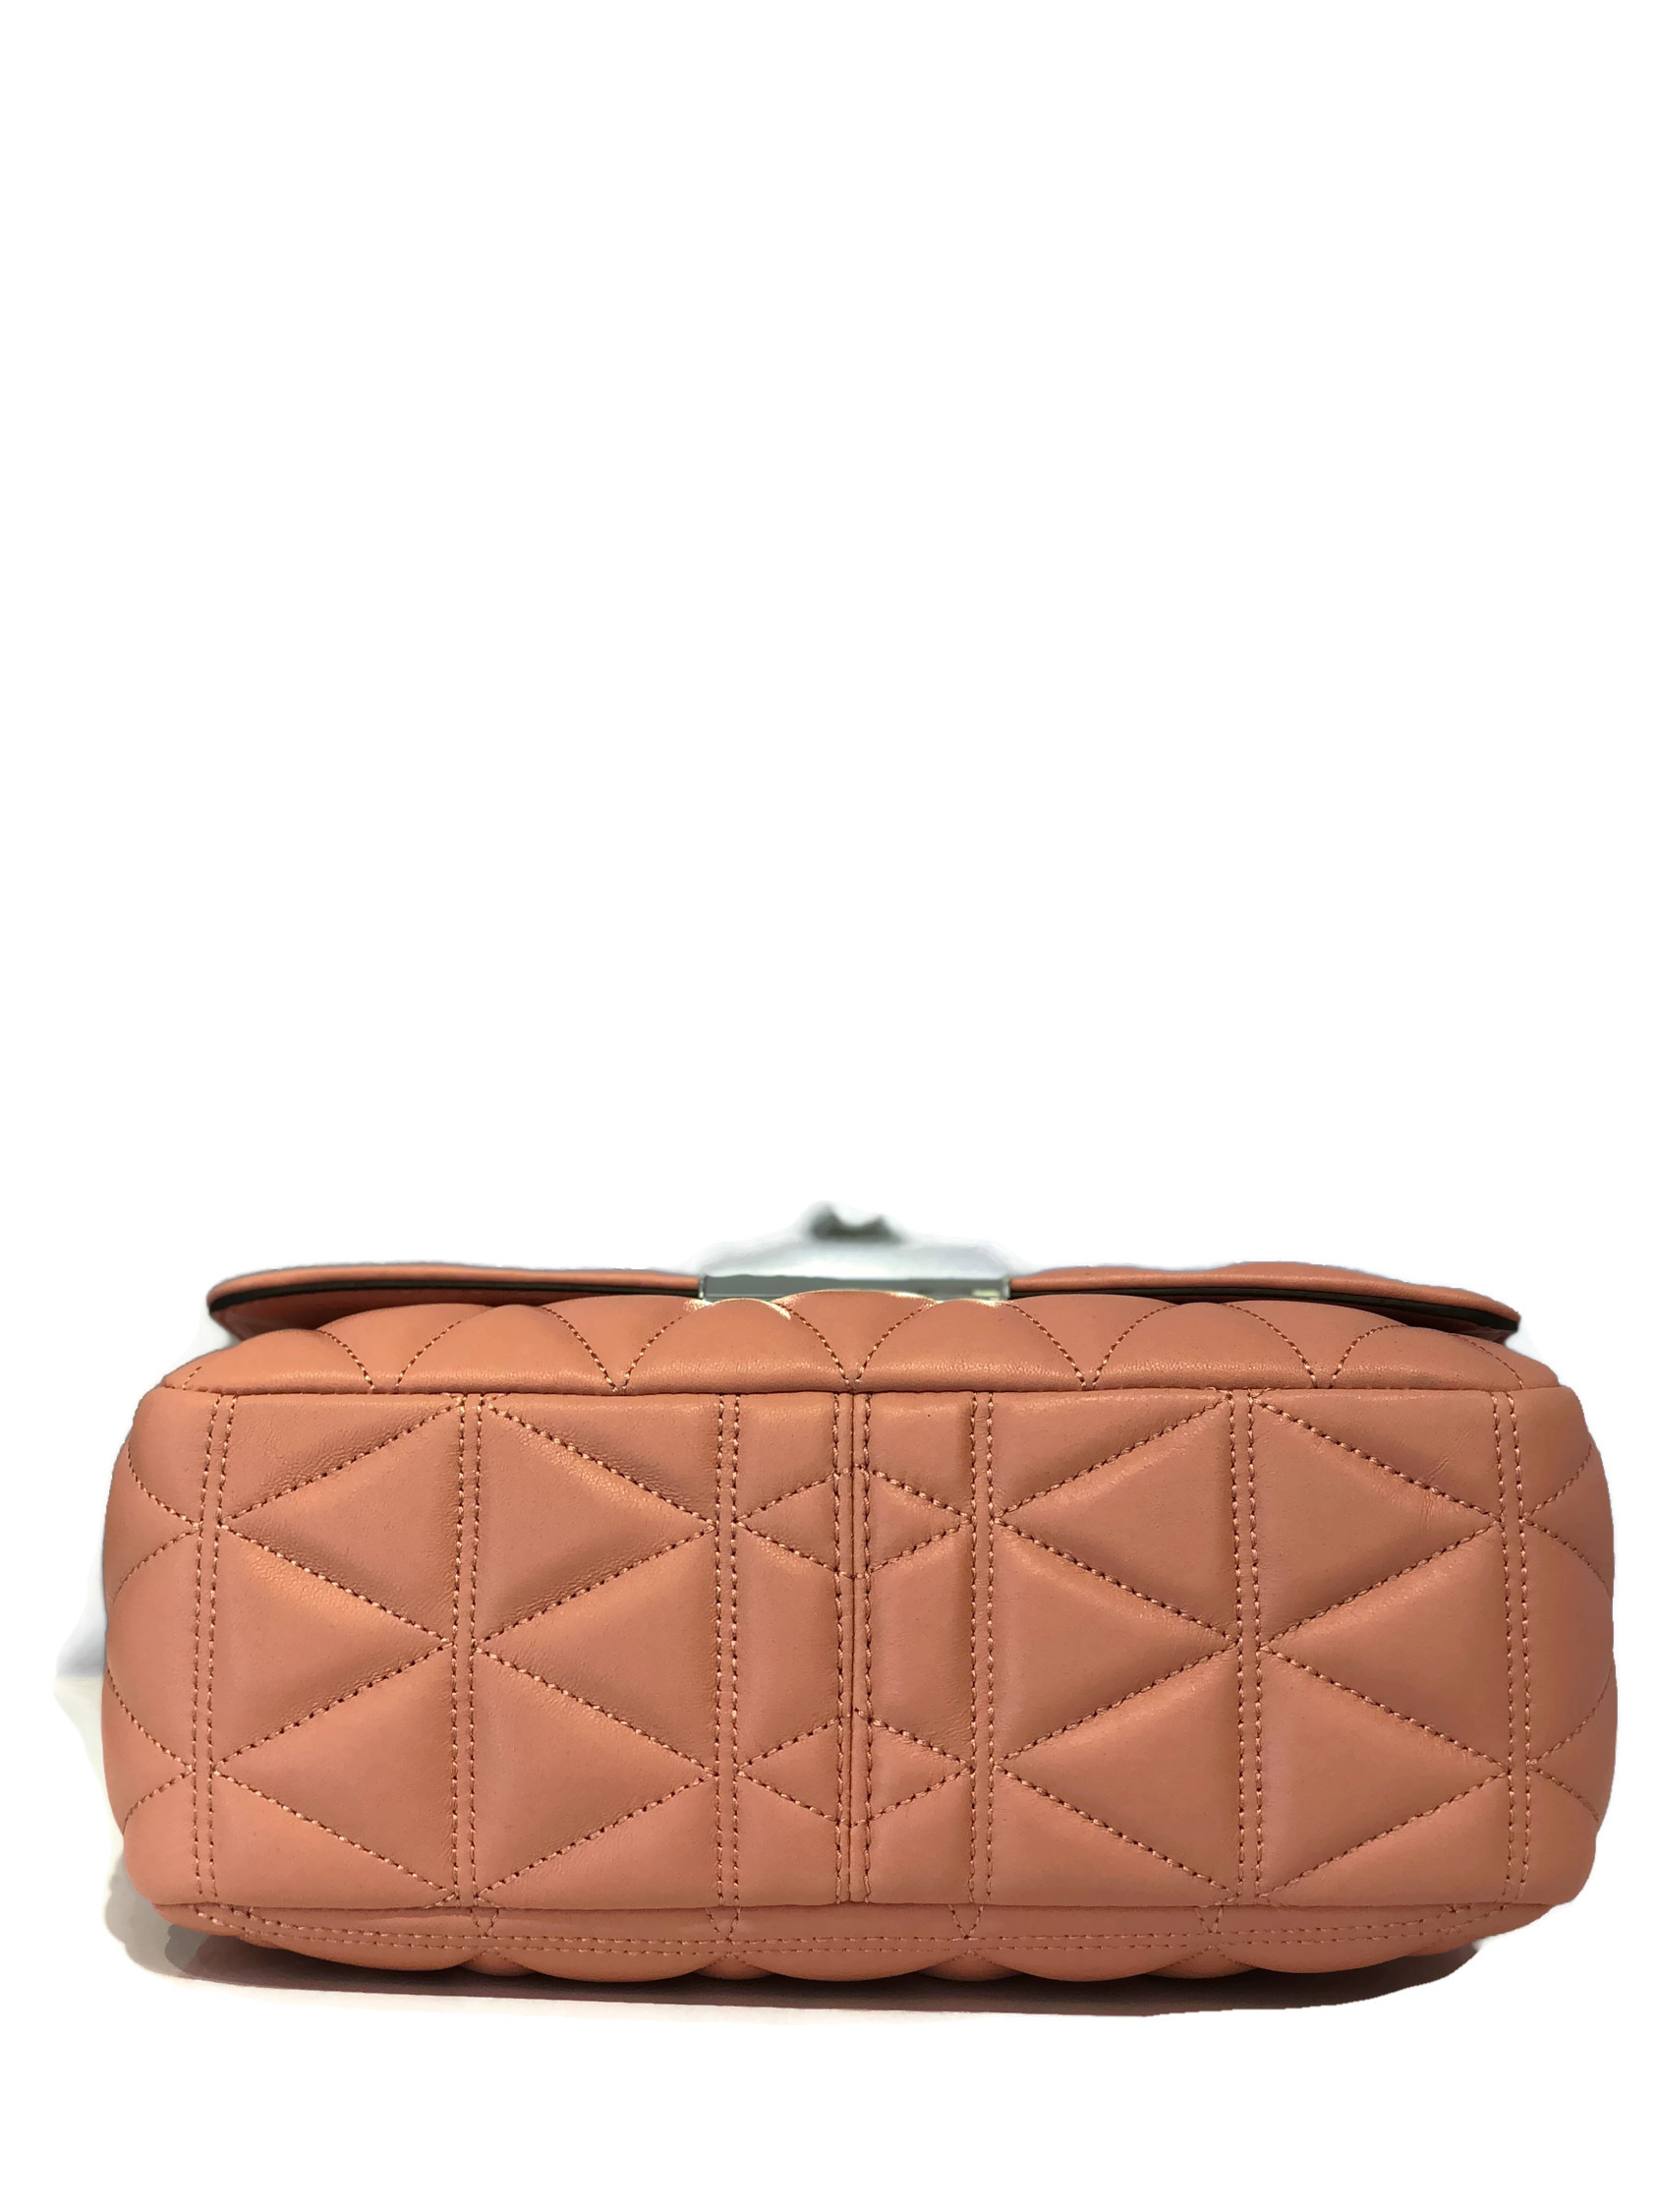 8f42aaf94e2d MICHAEL Michael Kors Vivianne Quilted Soft Leather Large Shoulder Flap Bag  - Peach - Walmart.com